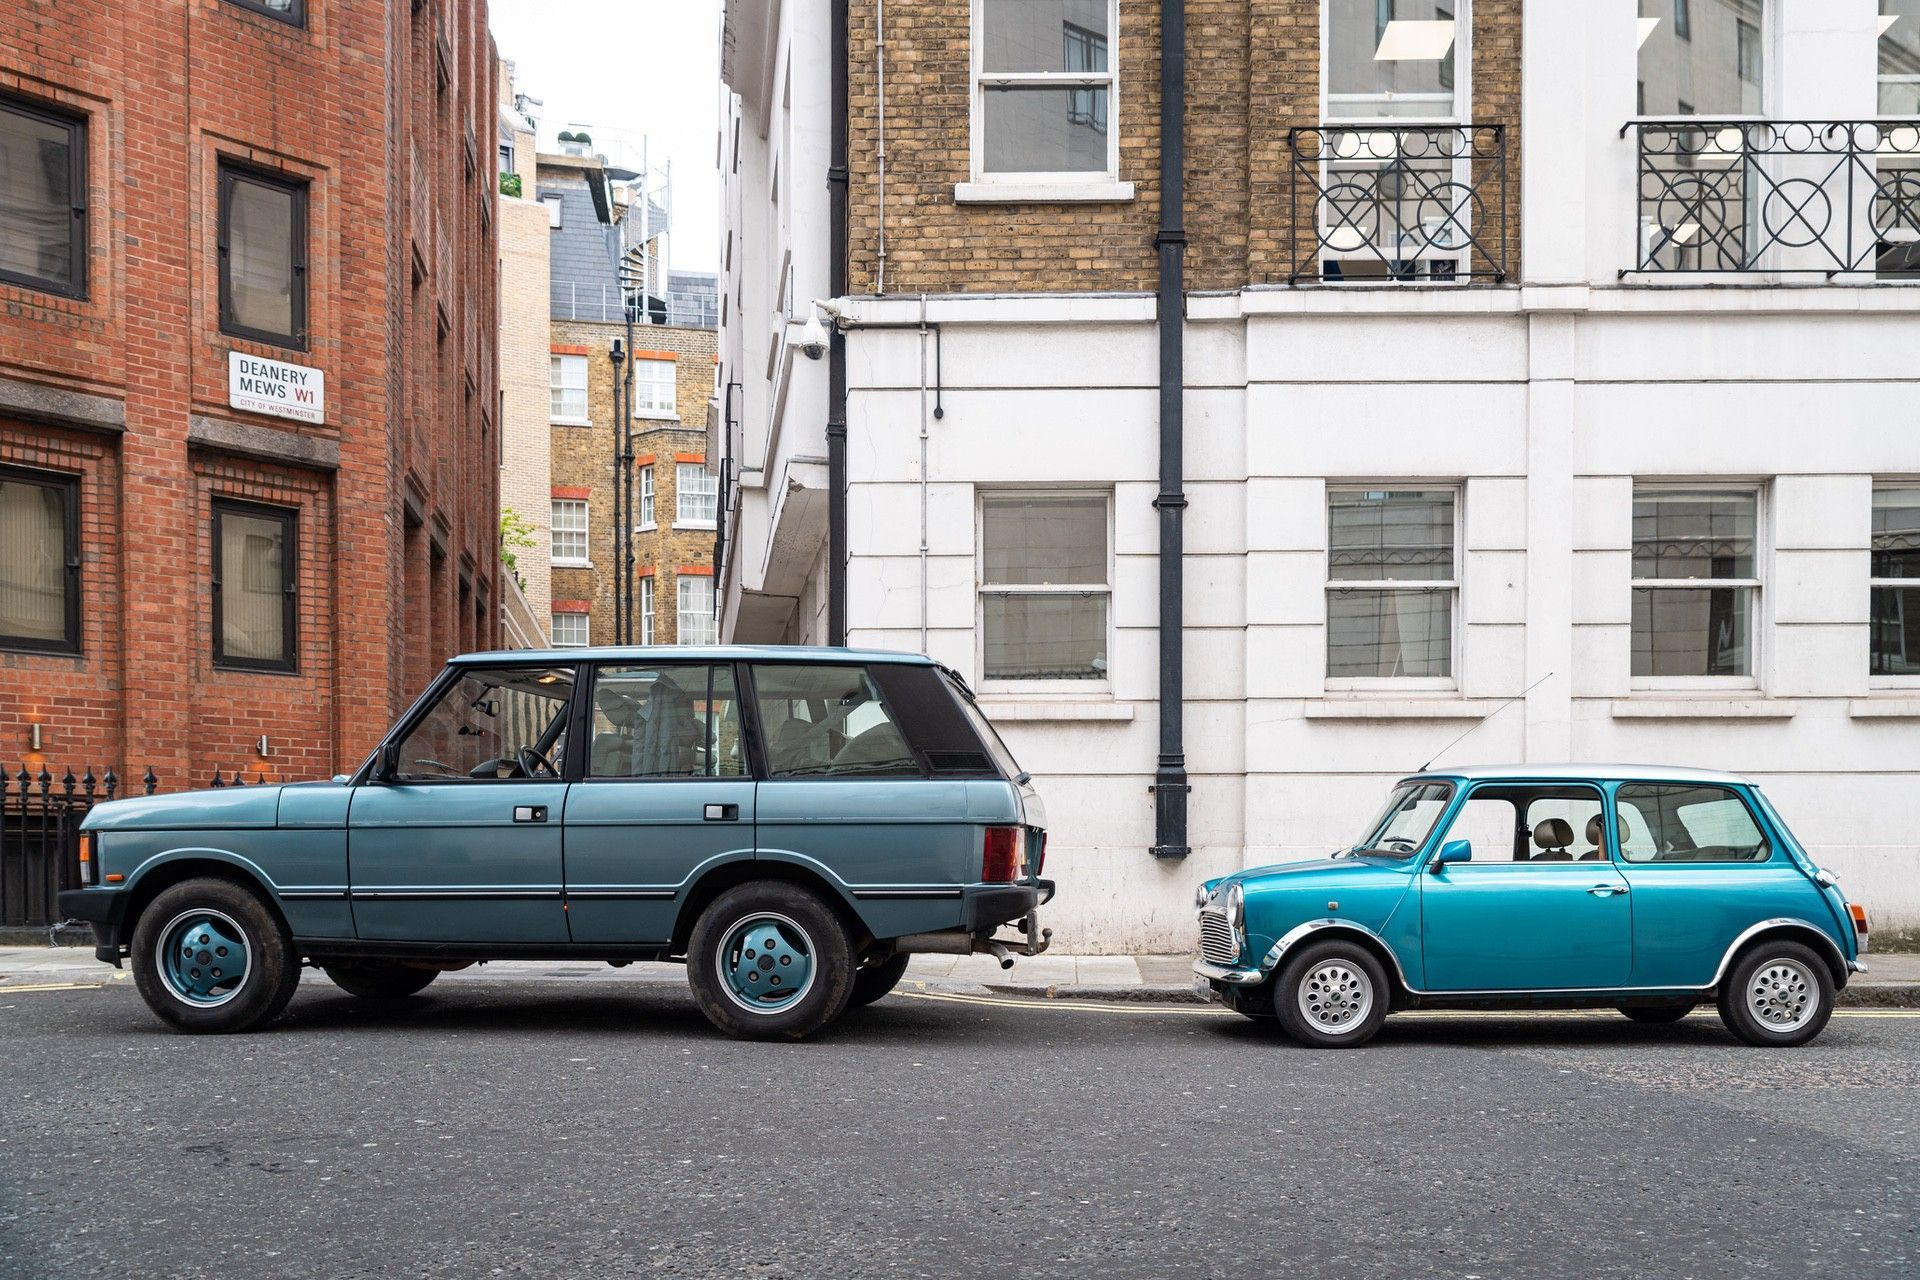 10.LondonElectricCarsaffordableelectric-poweredclassicMiniconversionstaticwithRangeRoverClassic